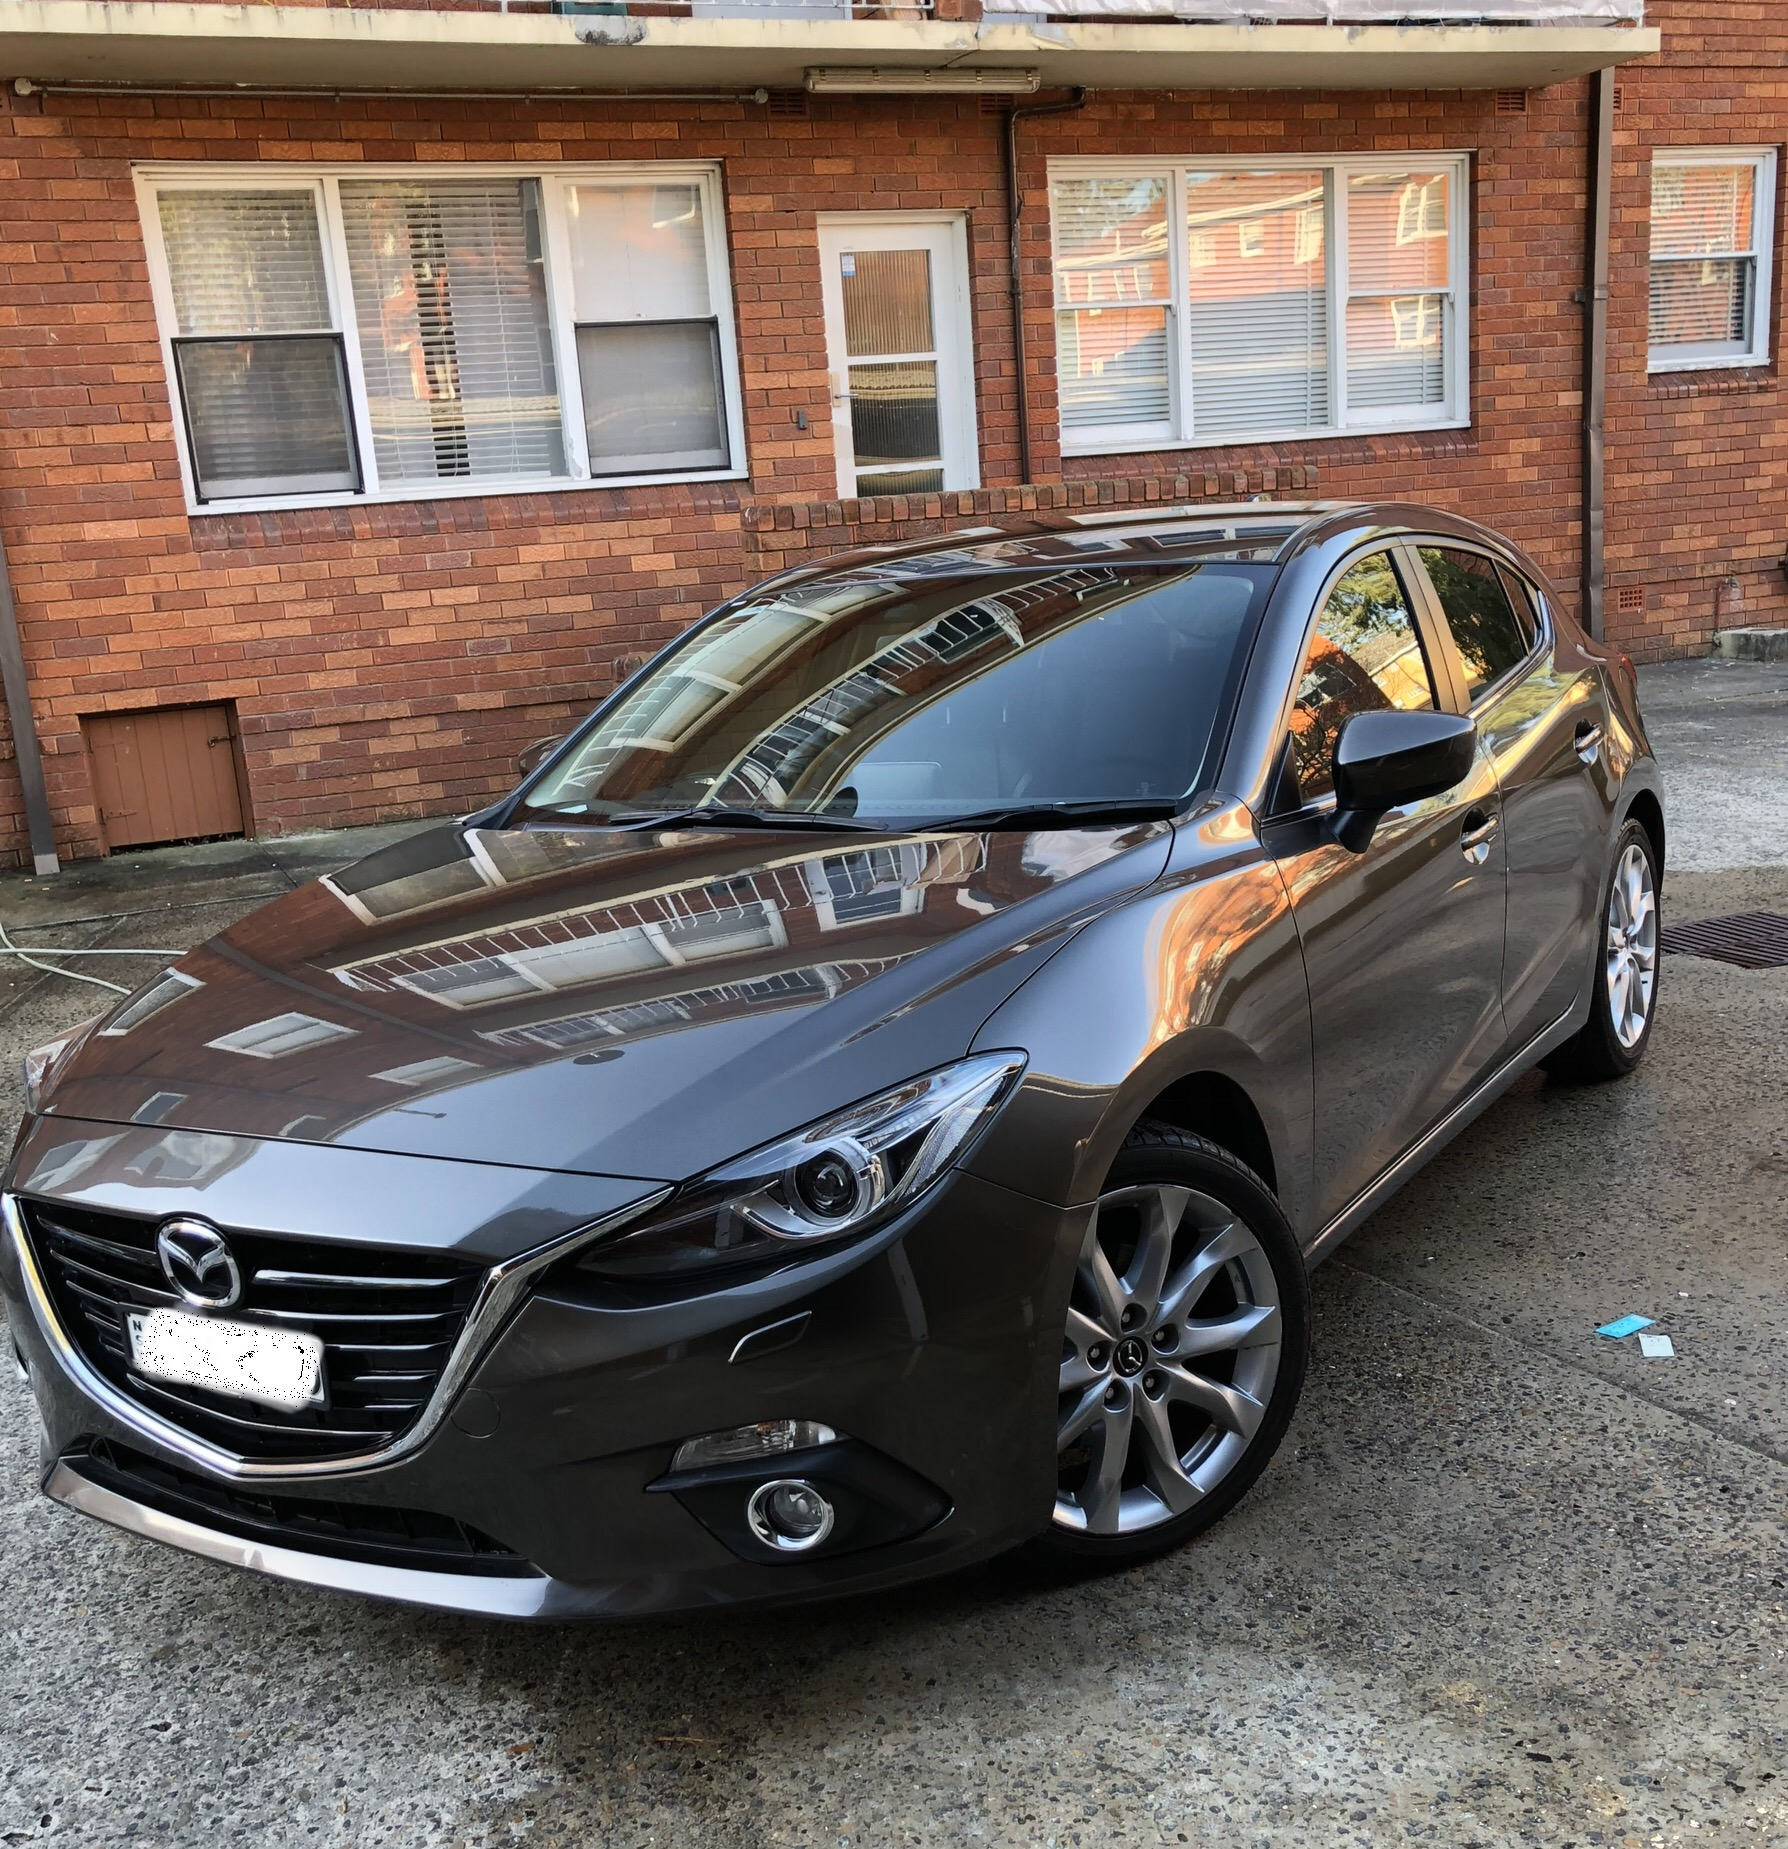 Picture of Rodrigo's 2014 Mazda 3